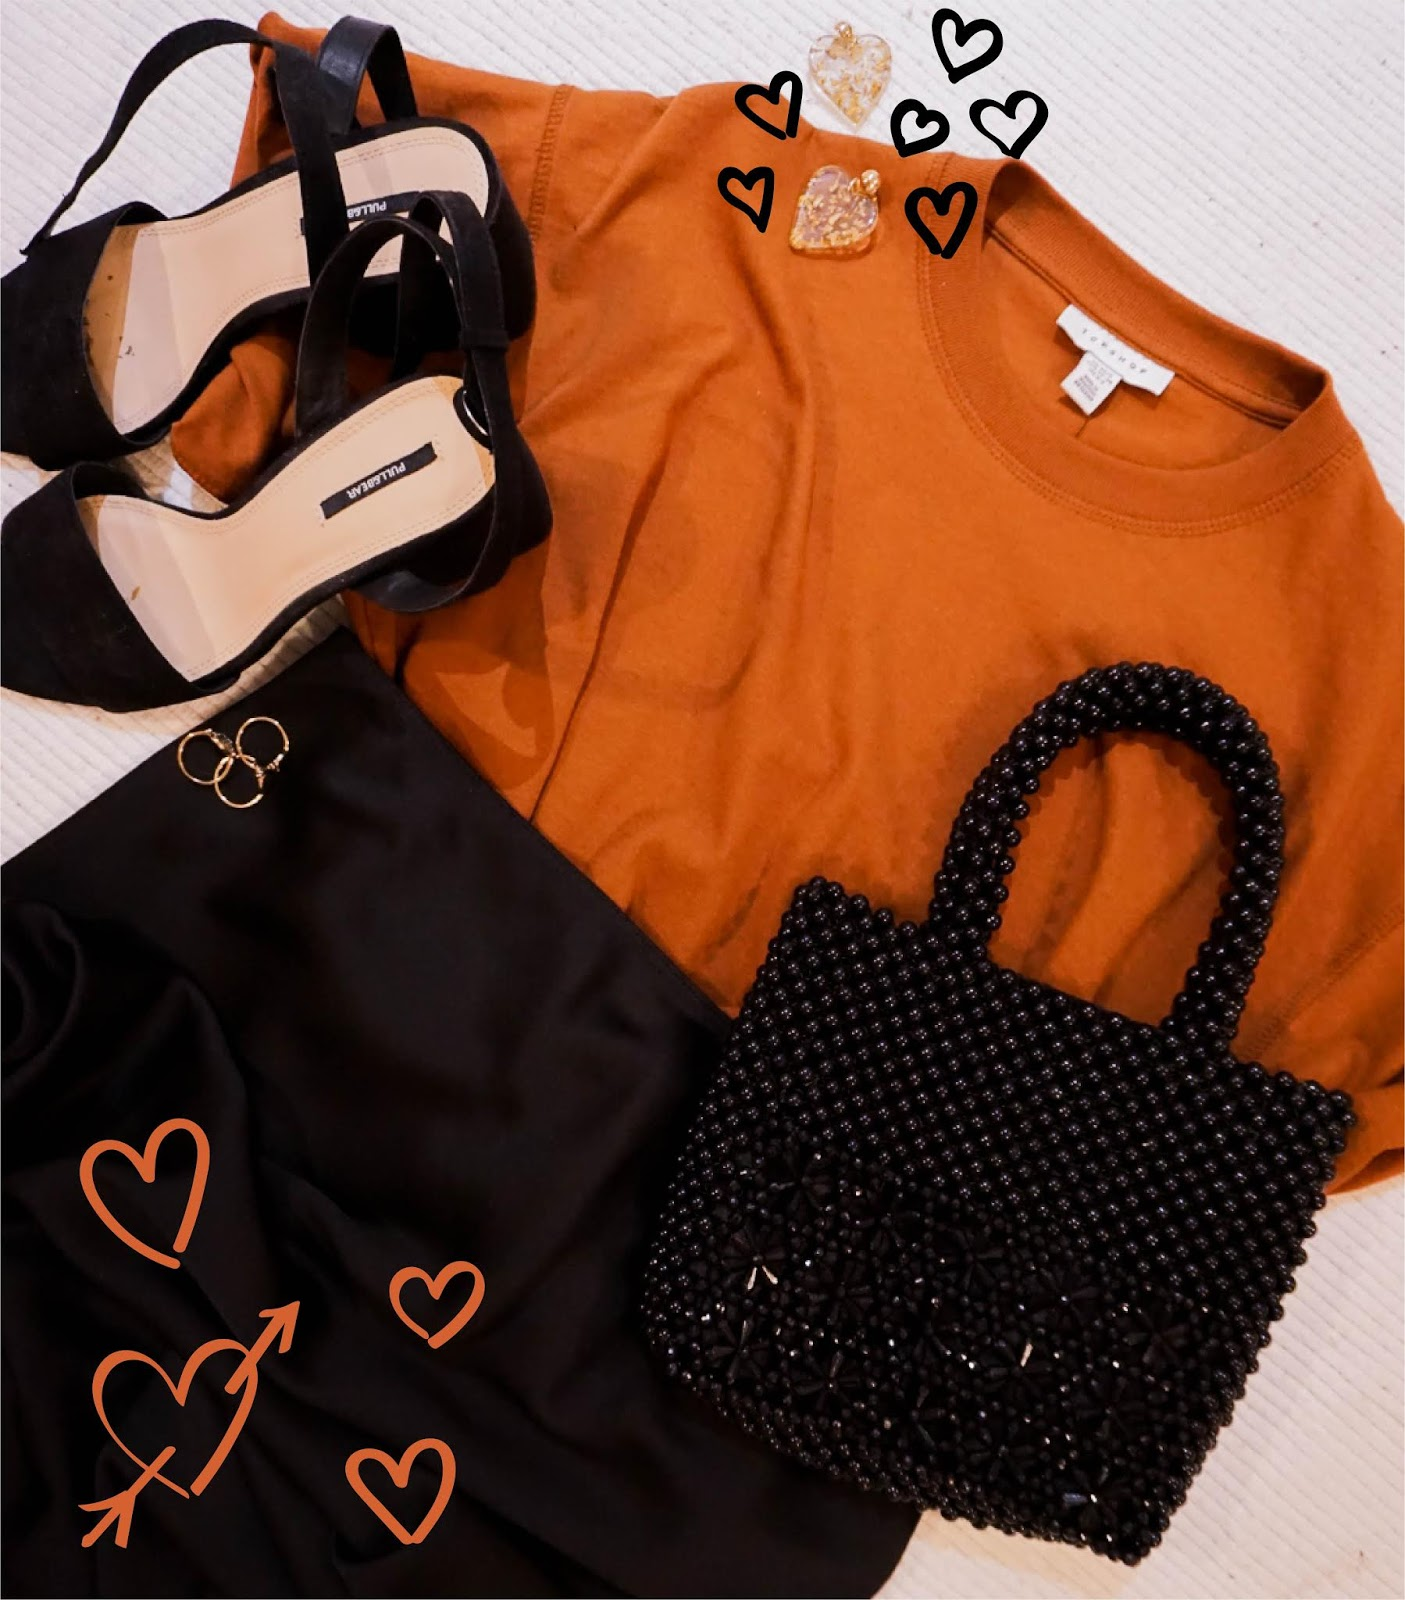 valentines day outfit: orange t-shirt, statement gold heart shaped earrings, black beaded bag, black midi satin skirt, gold rings, black heeled sandals